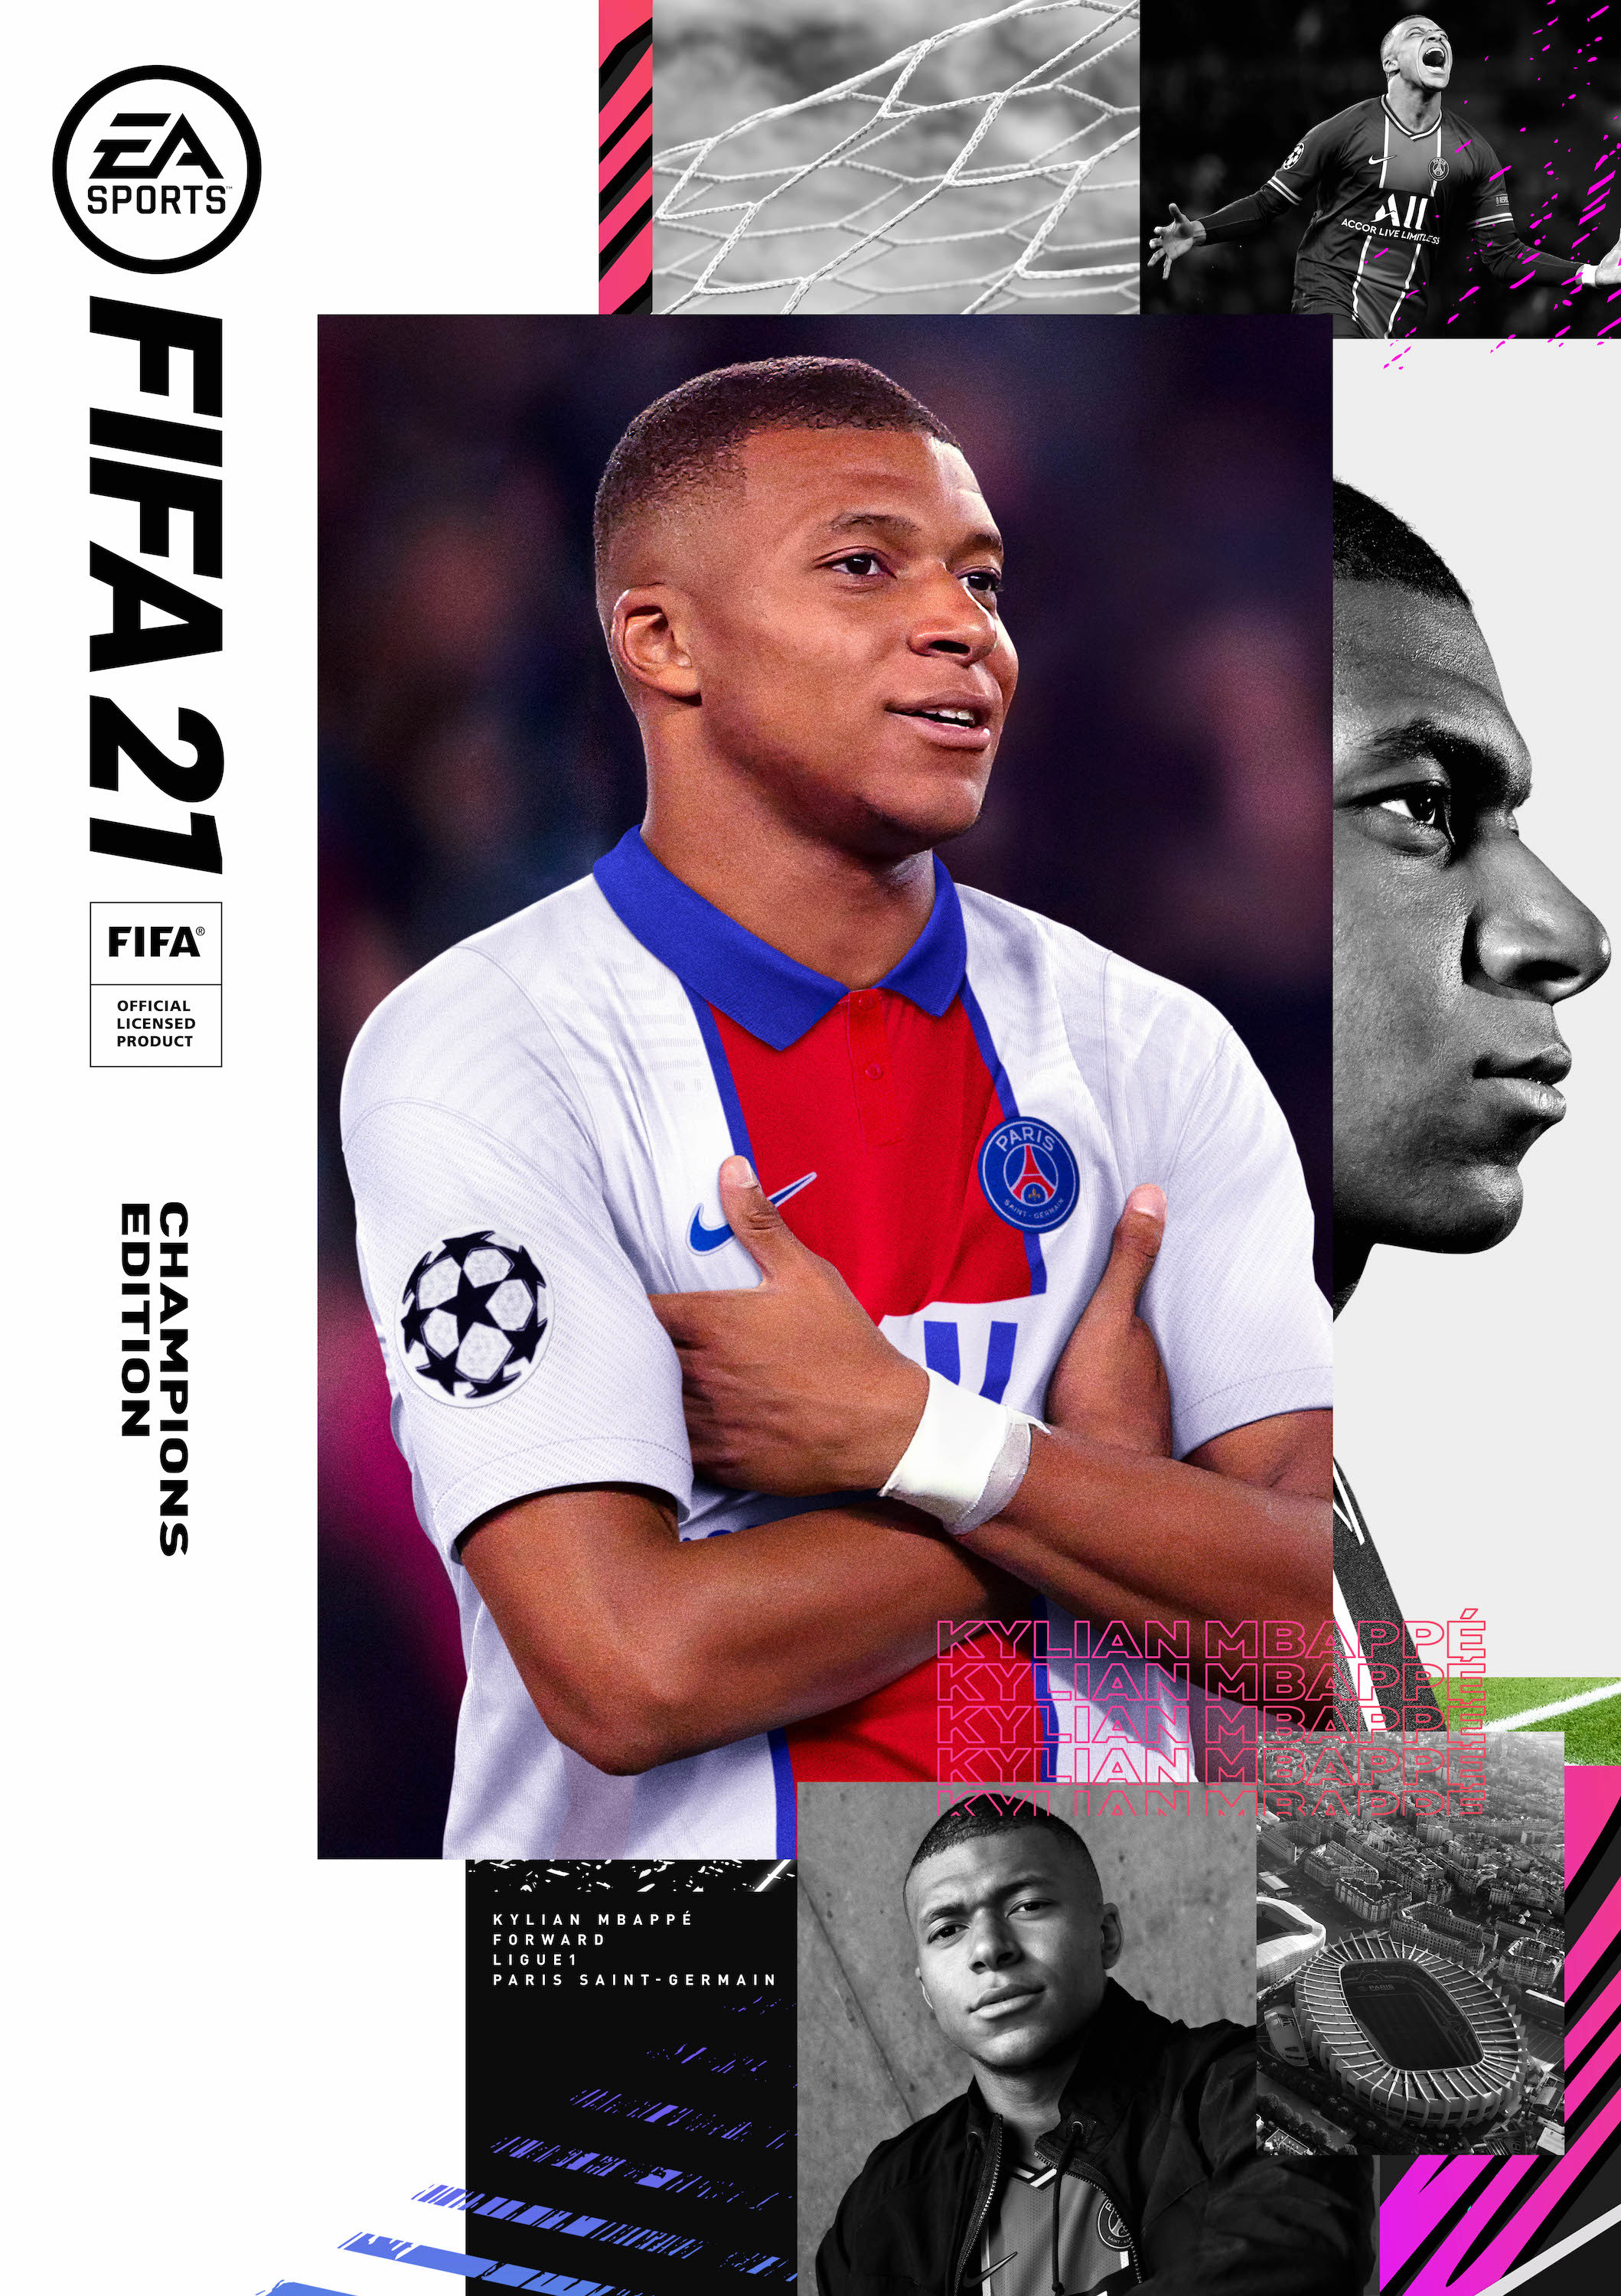 mbappe is the cover star of fifa 21